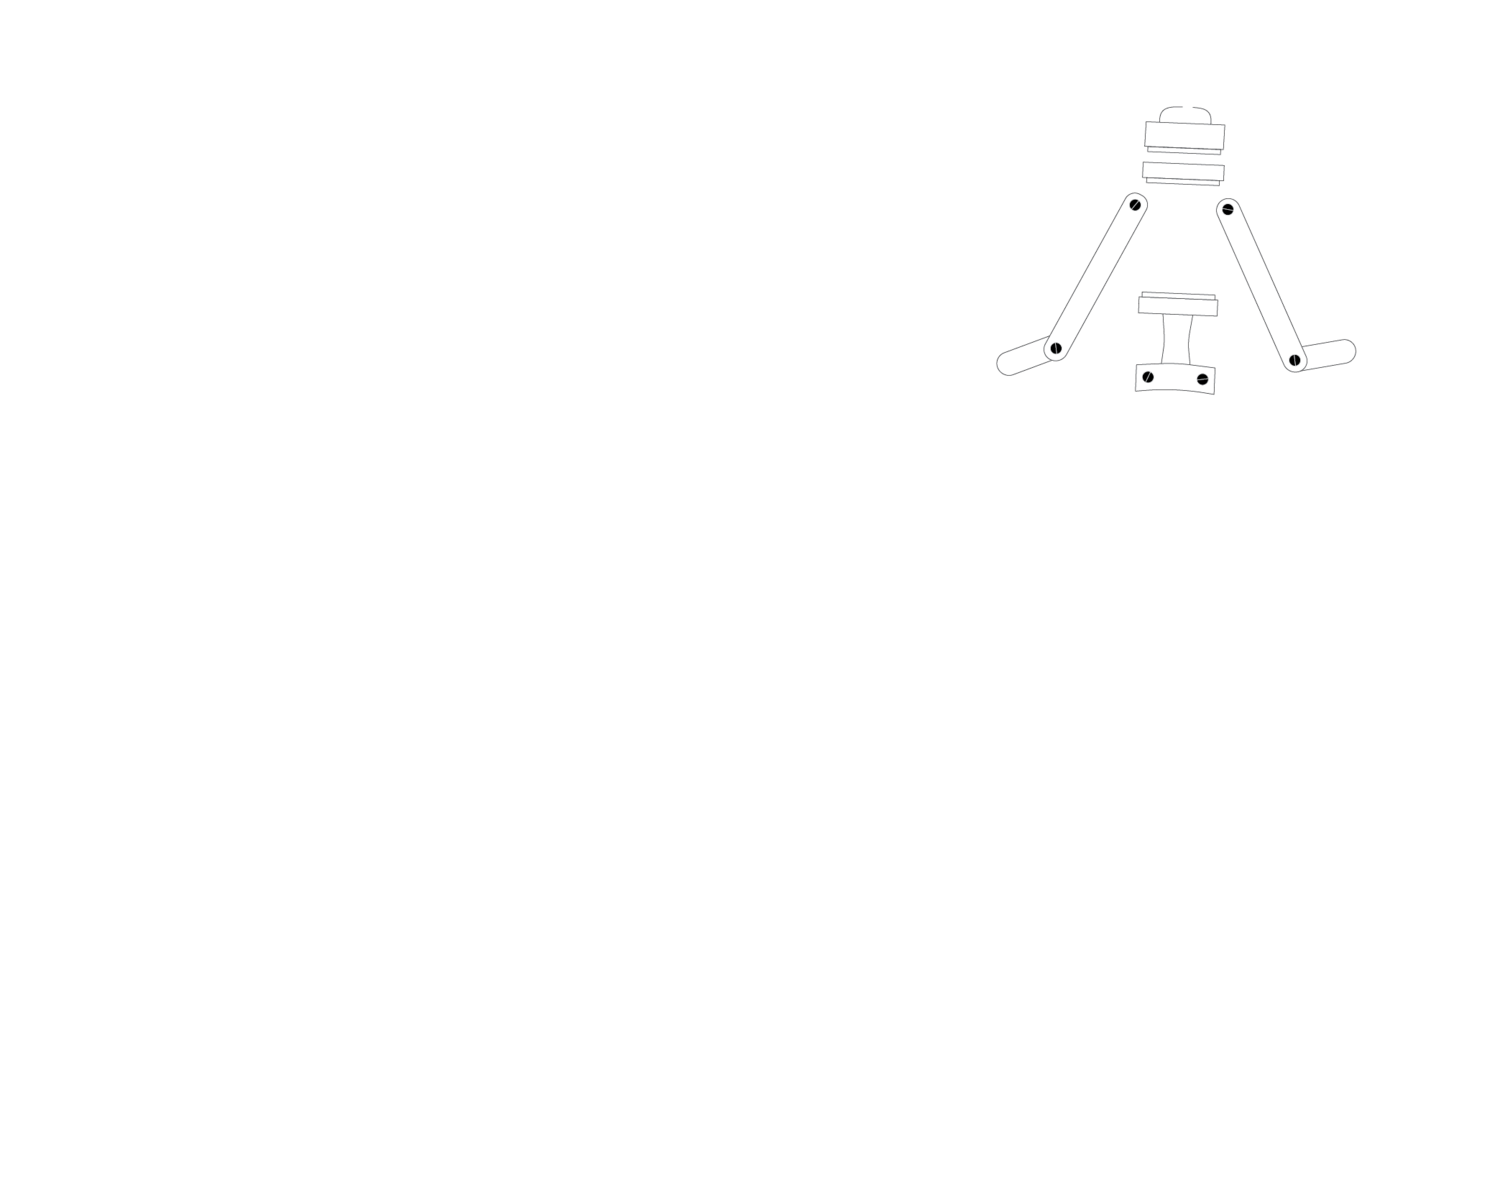 Keep or Destroy